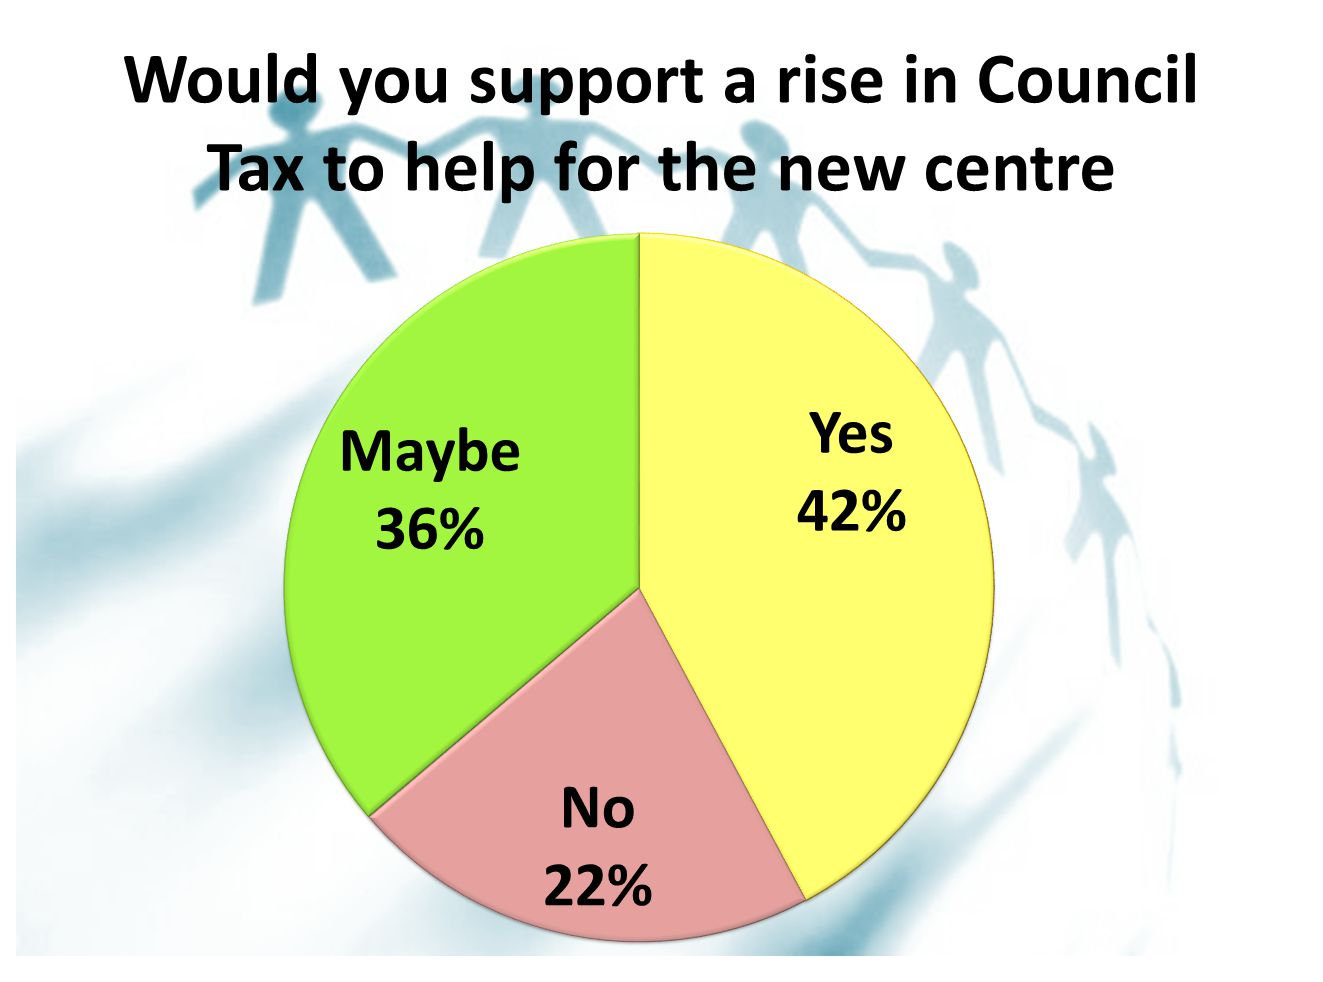 Would you support a rise in Council Tax to help for the new centre